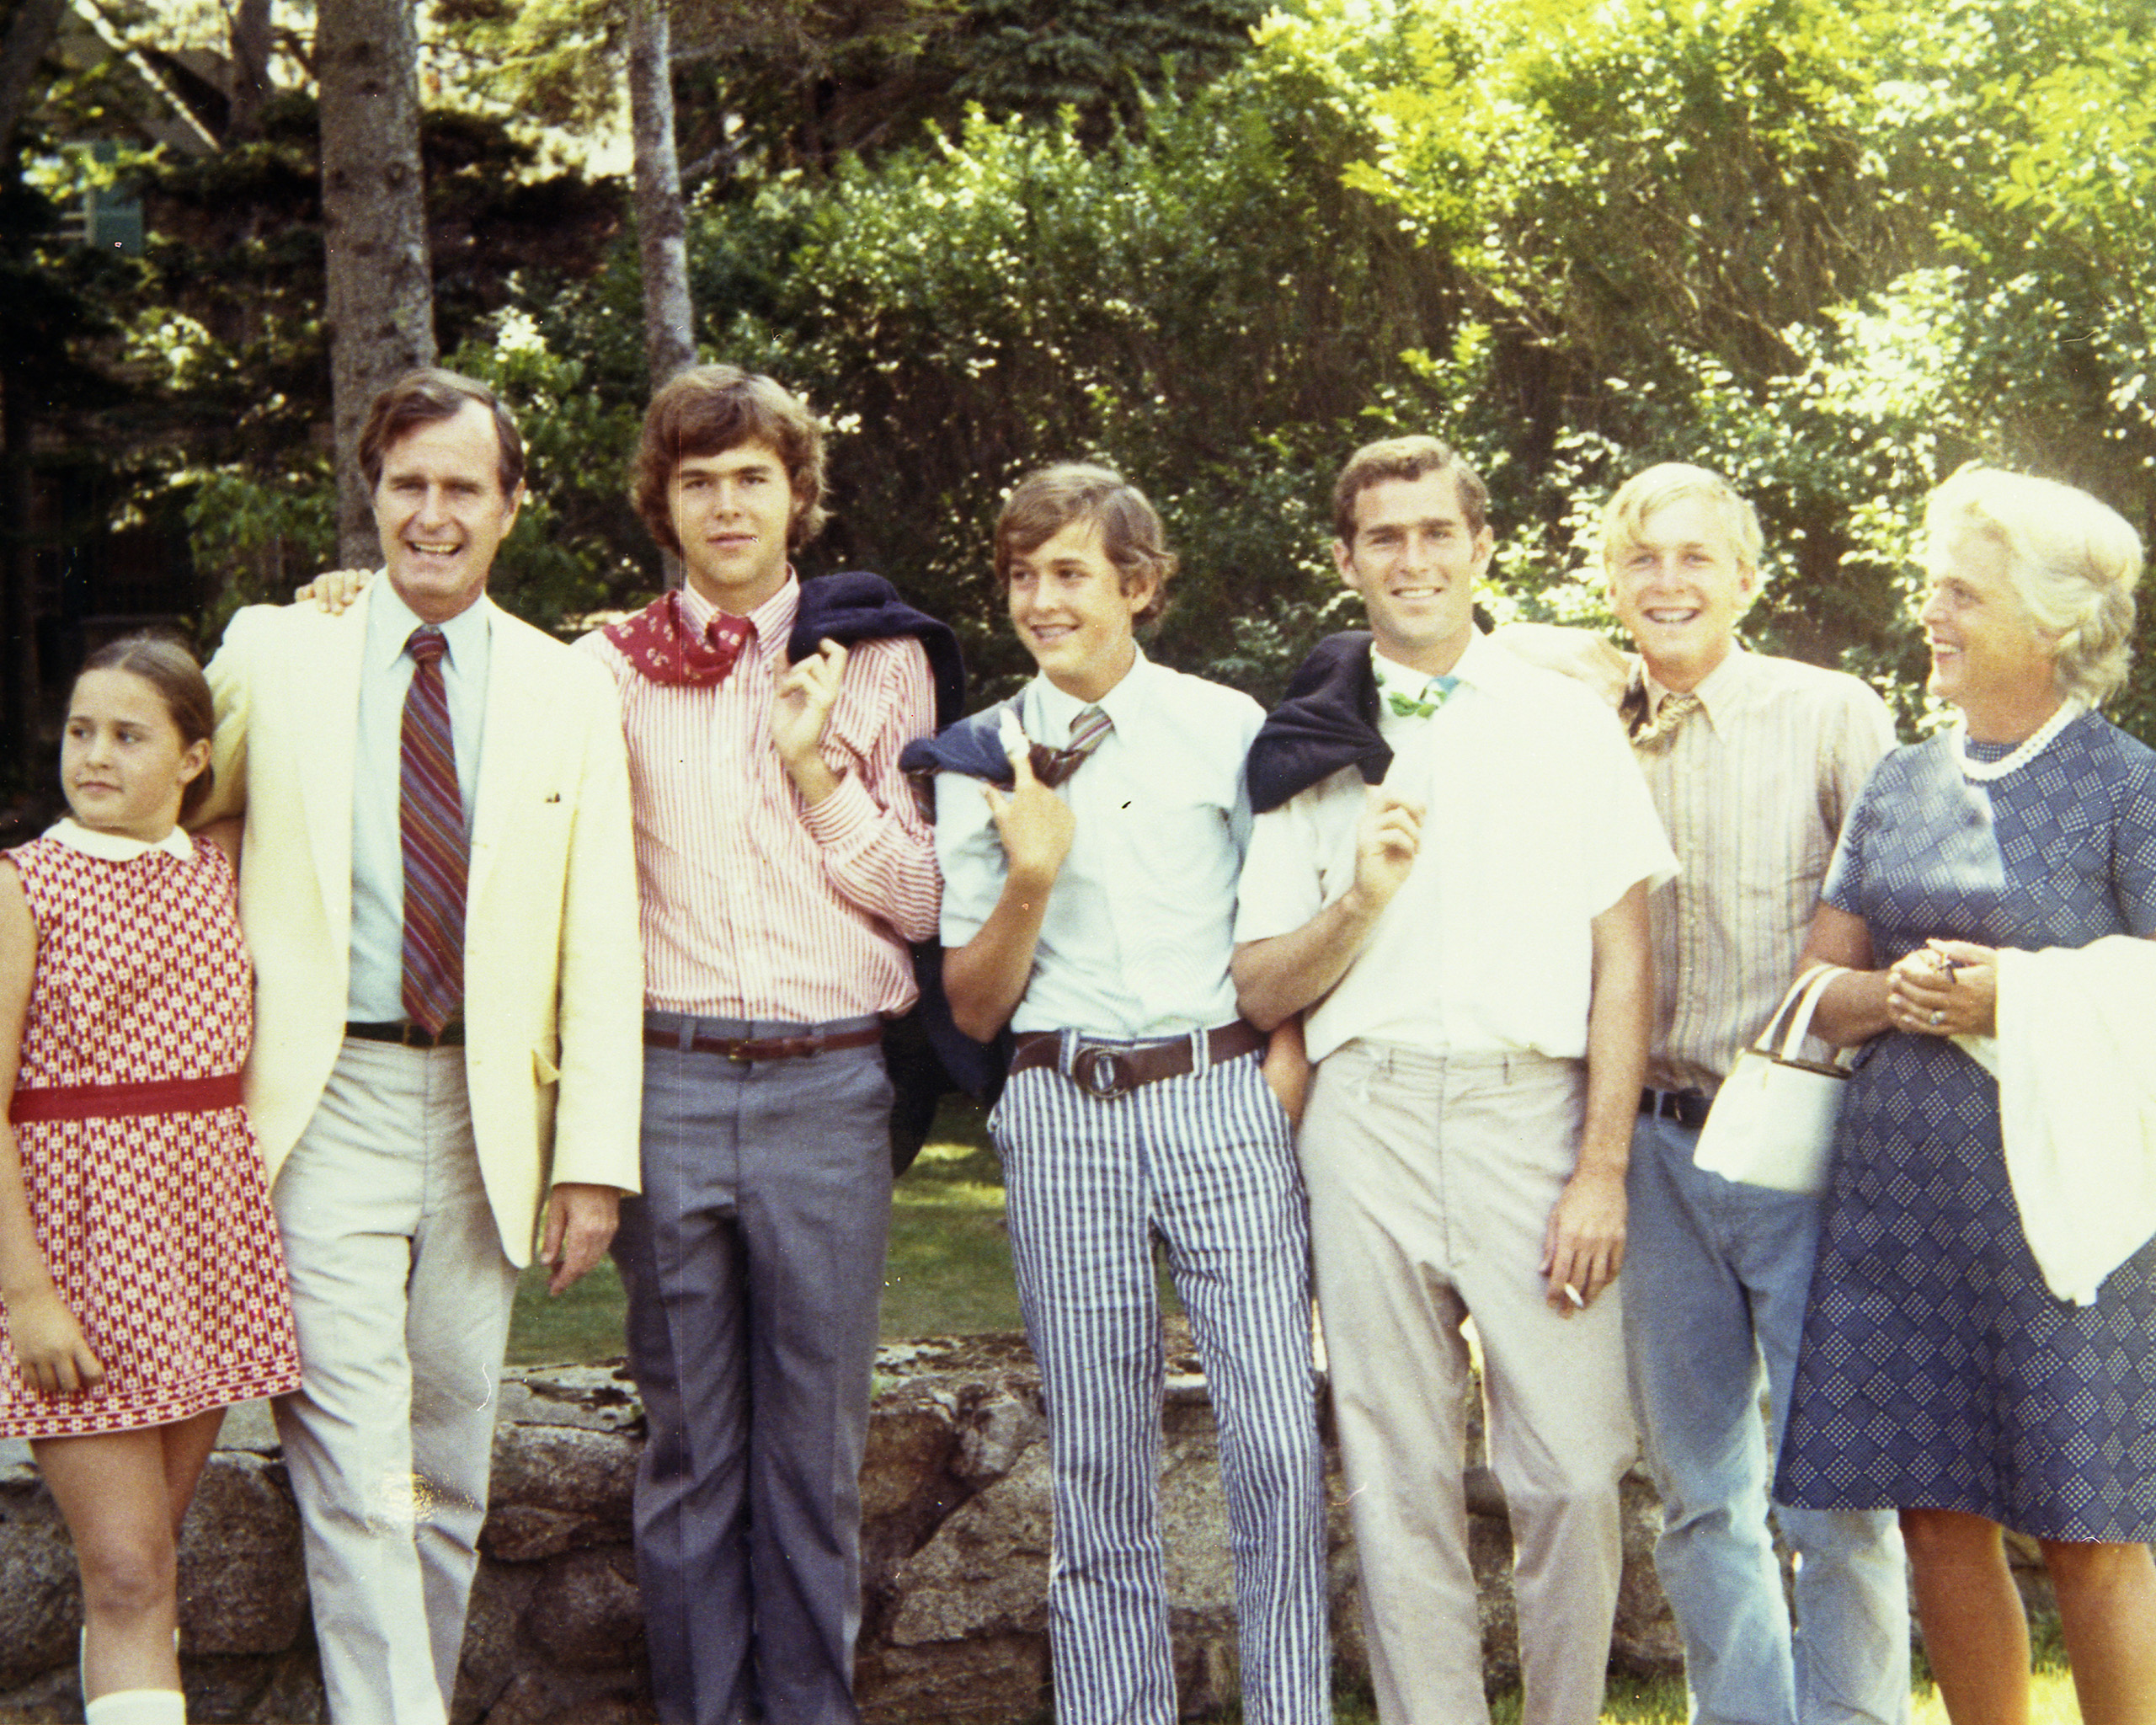 From left to right: Doro, George, Jeb, Marvin, George W., Neil, and Barbara Bush, 1966.